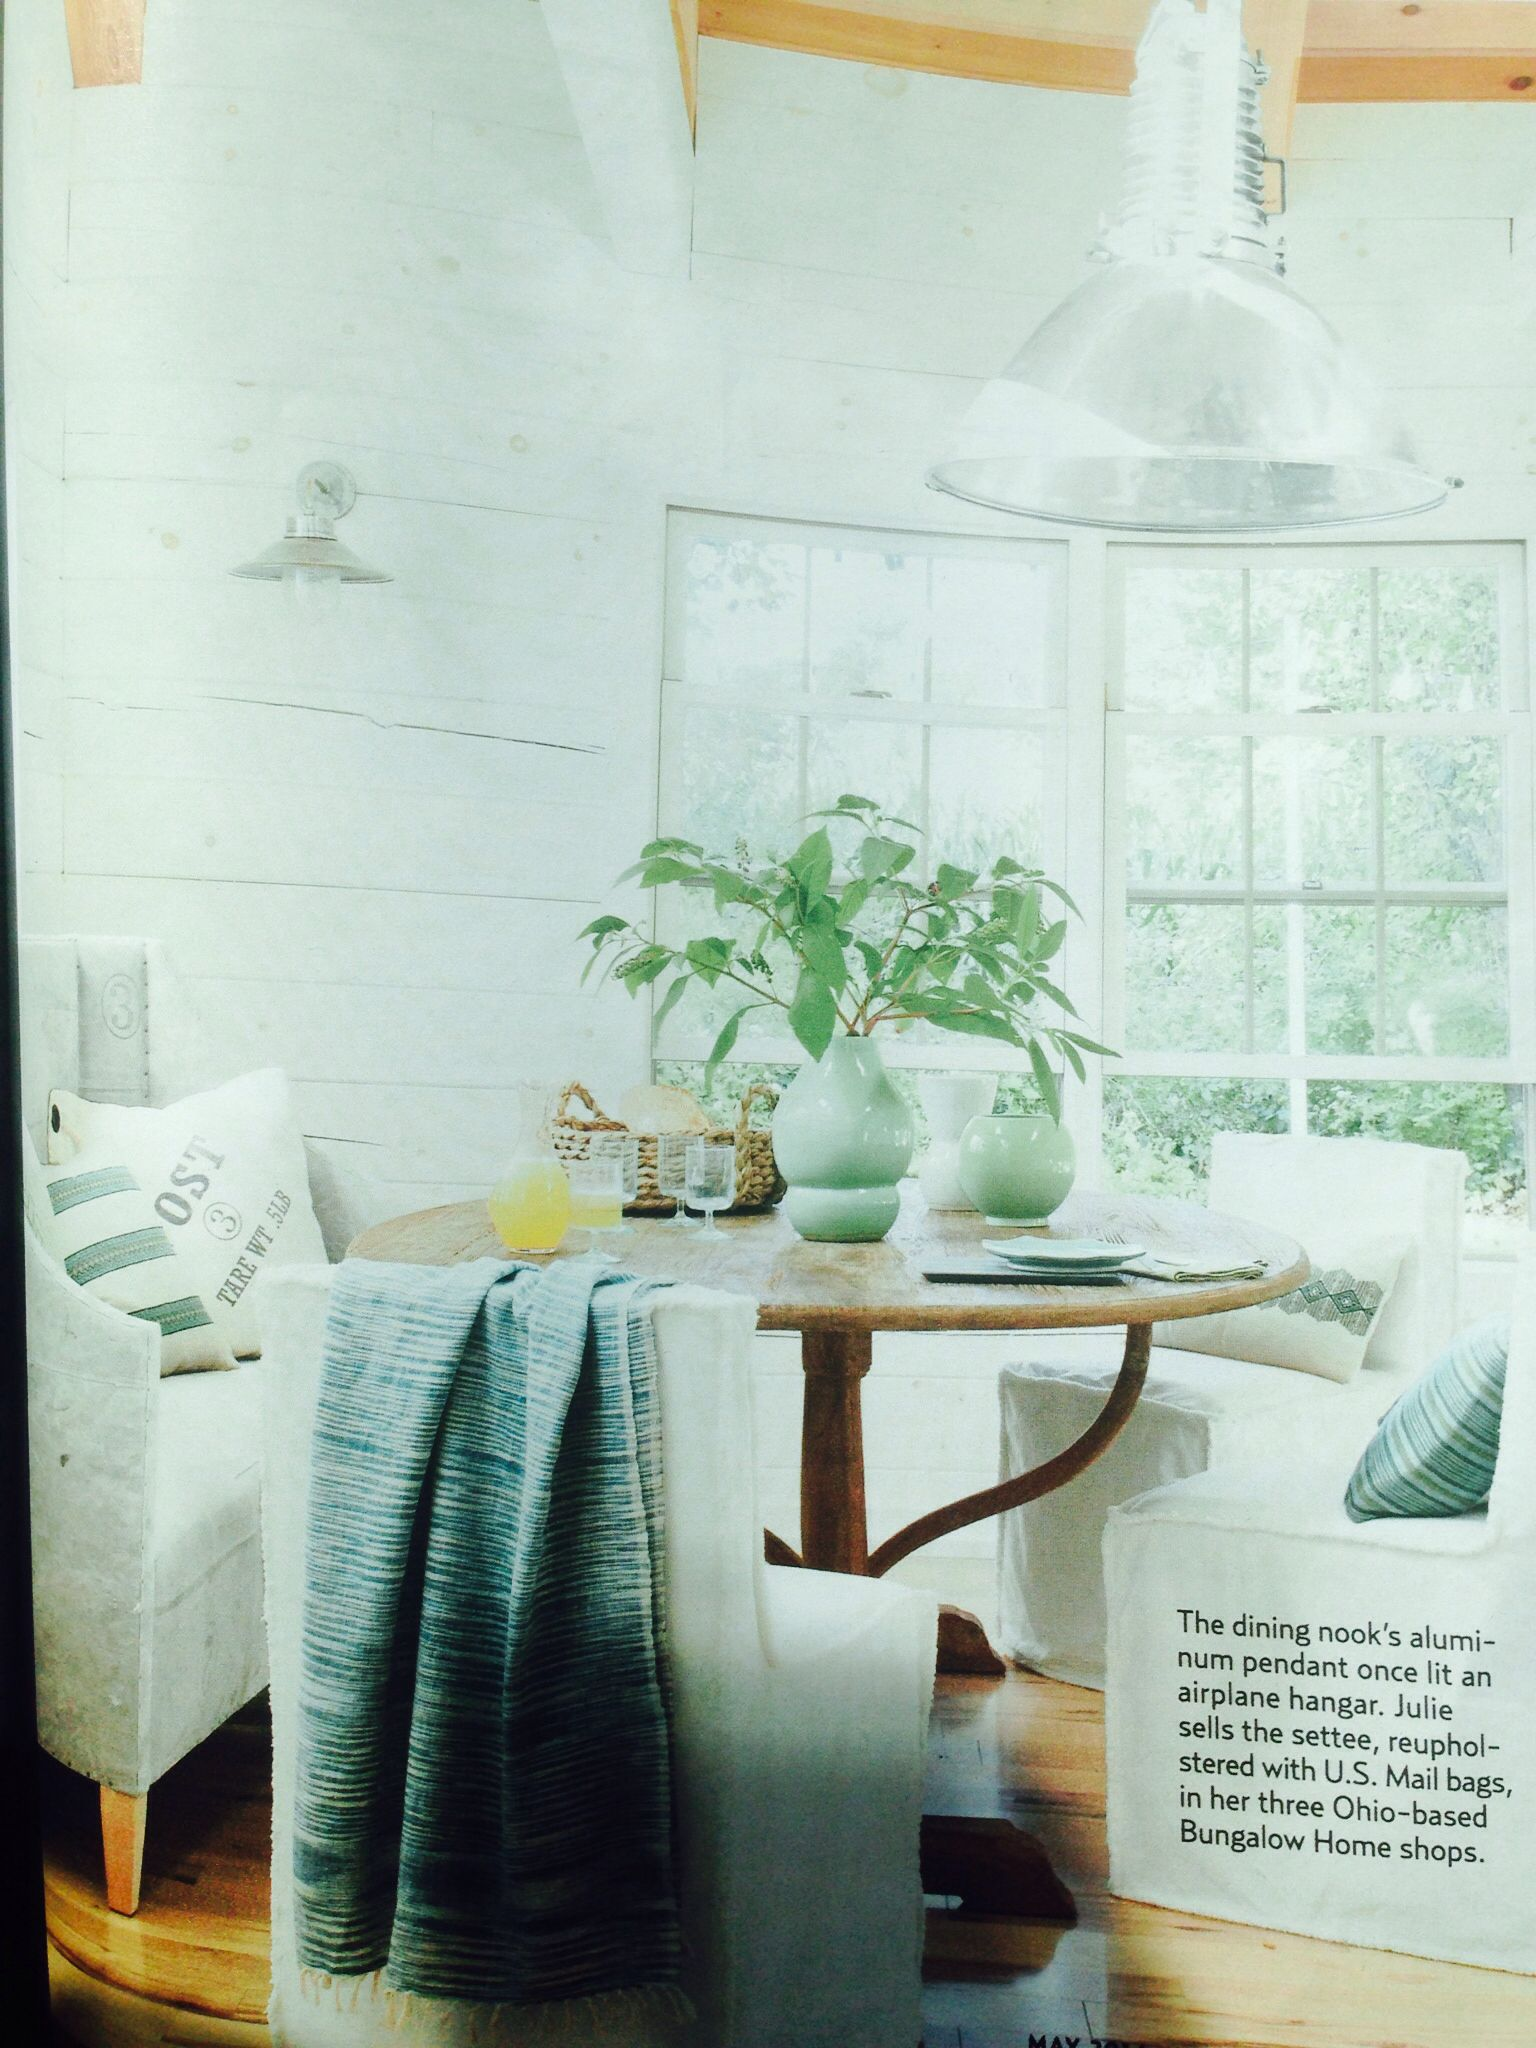 Courtesy Country Living. I love this kitchenette